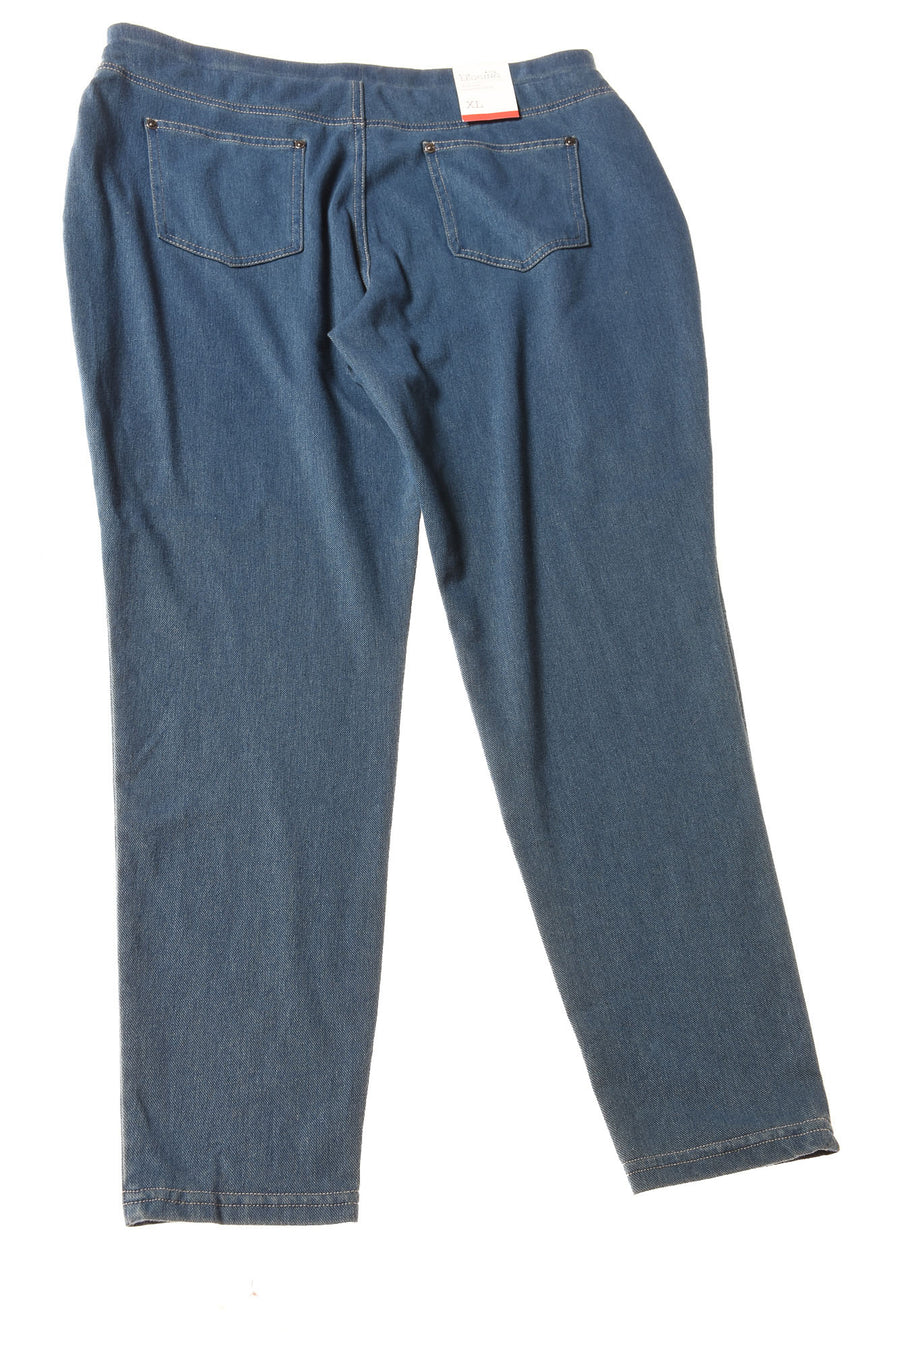 NEW Style & Co. Women's Jeans X-Large Blue